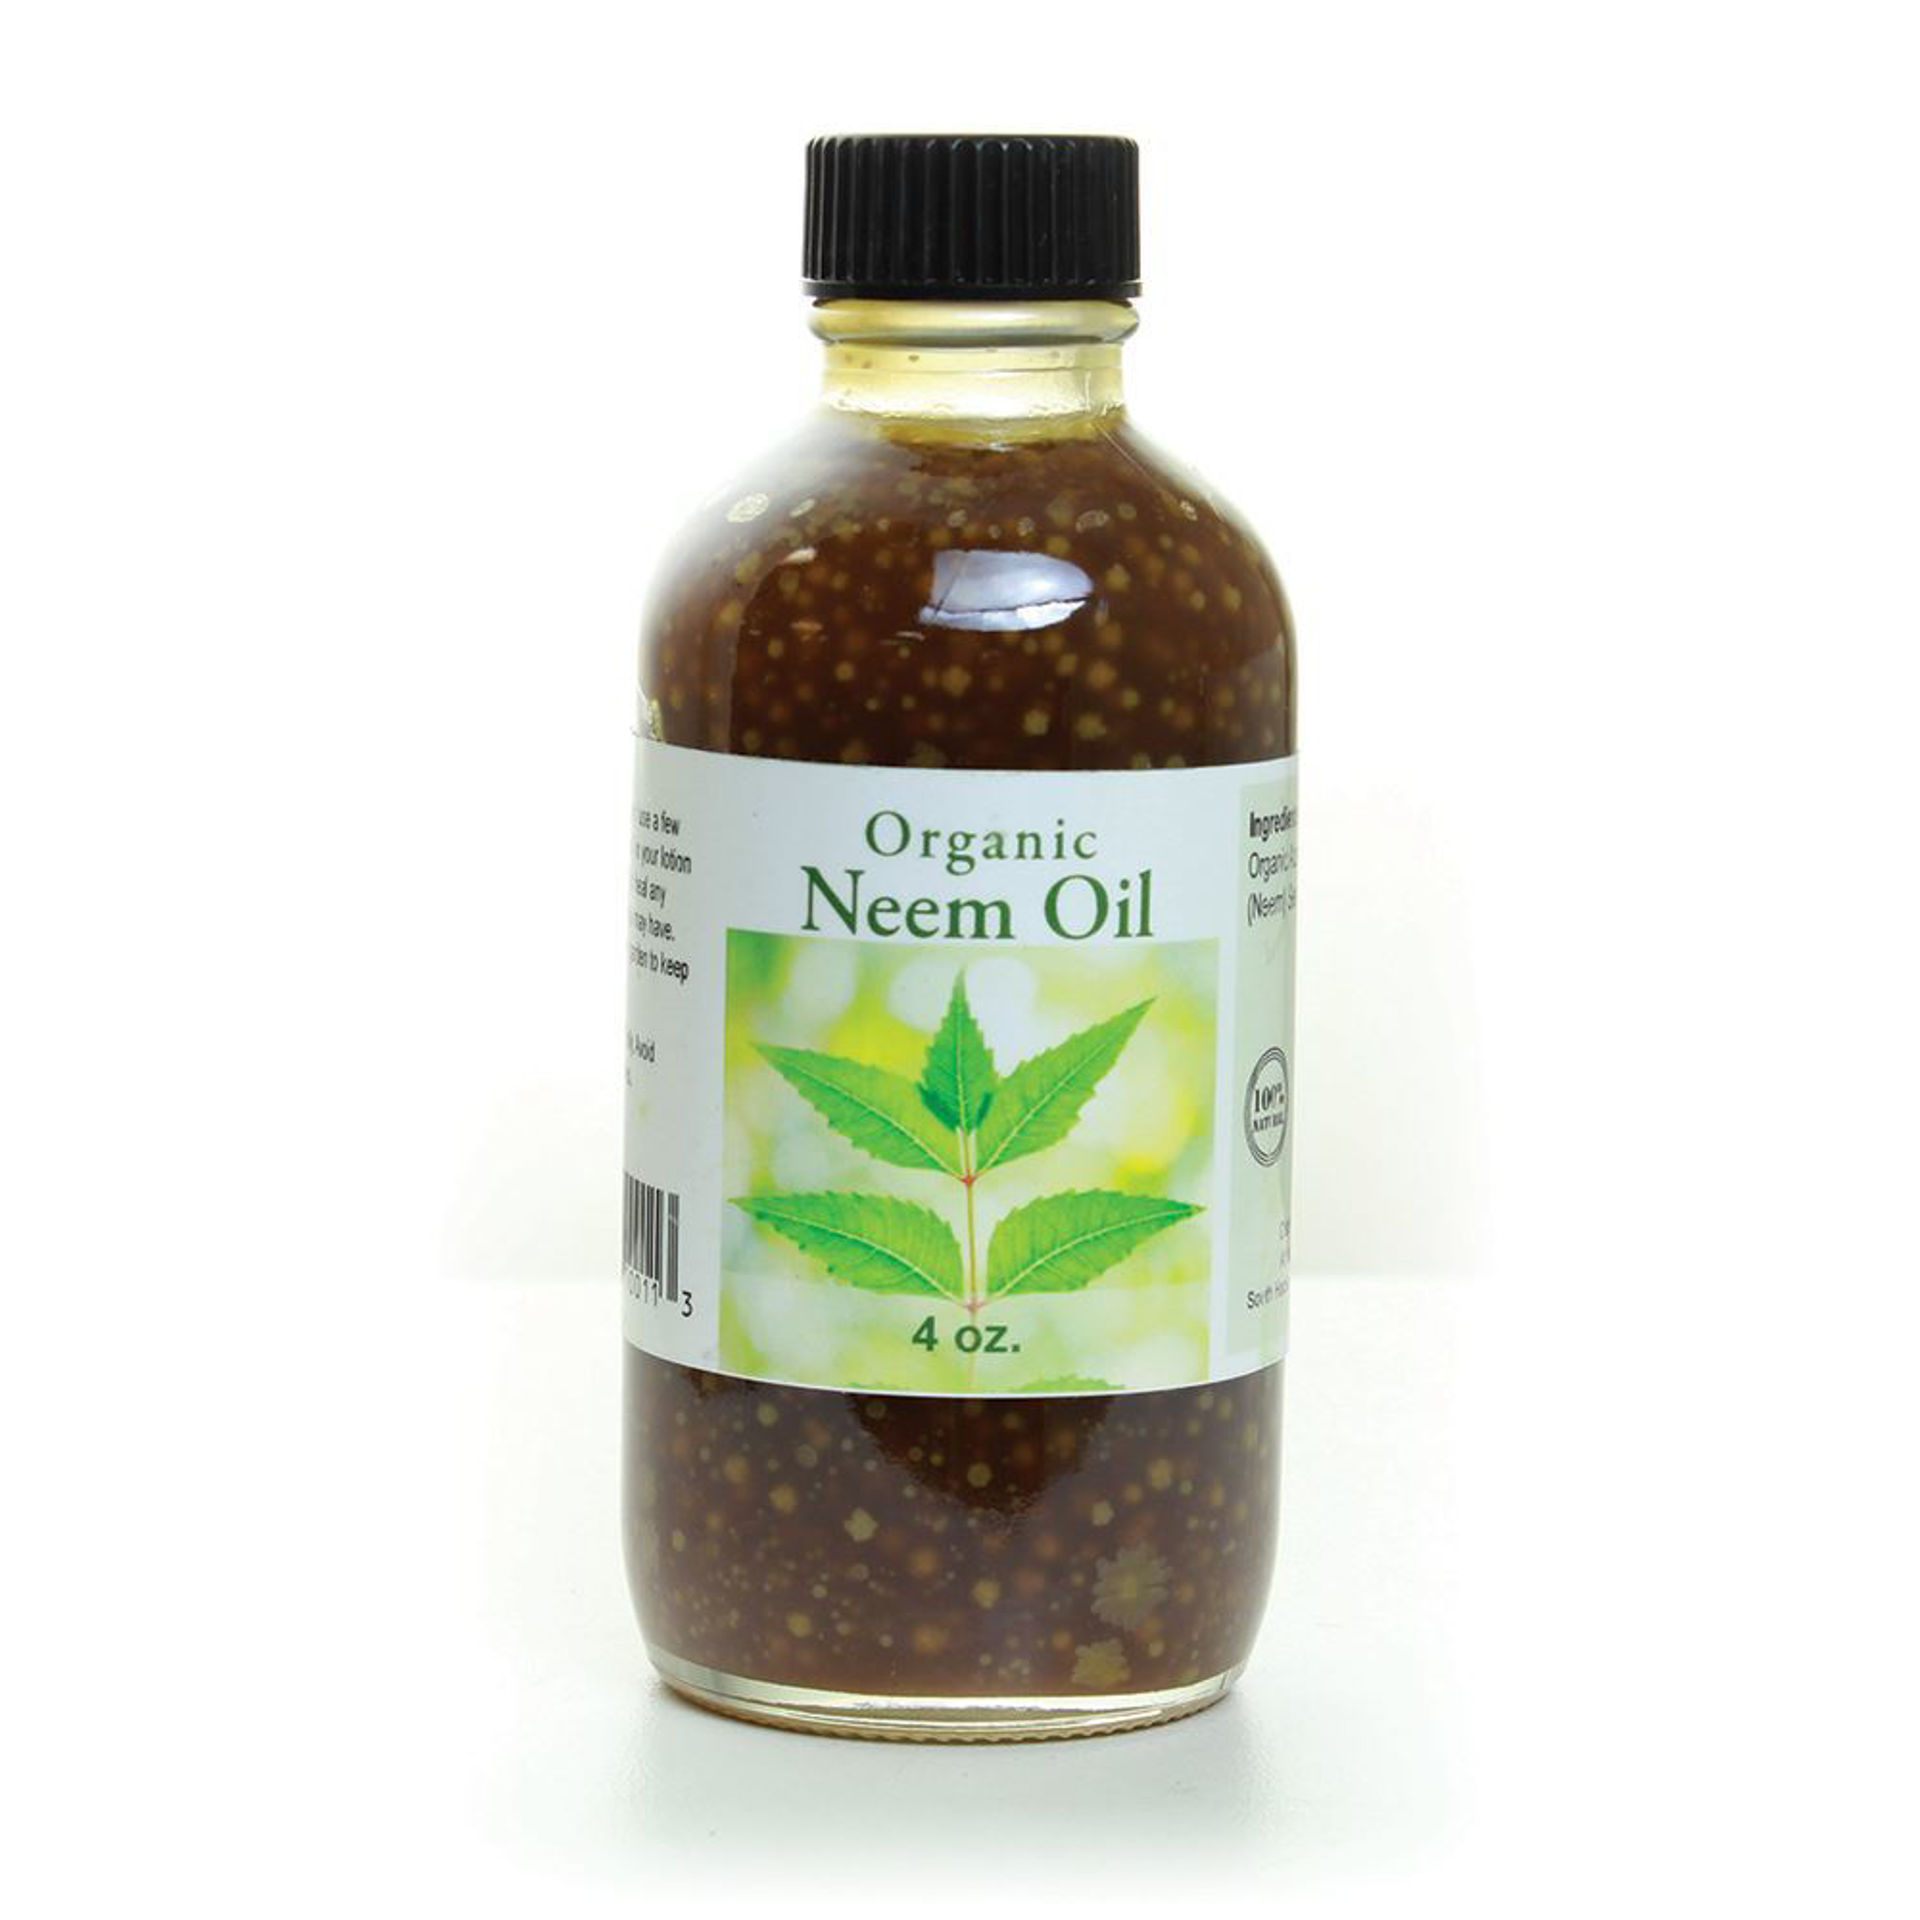 Picture of Neem Oil (Organic) - 4 oz.